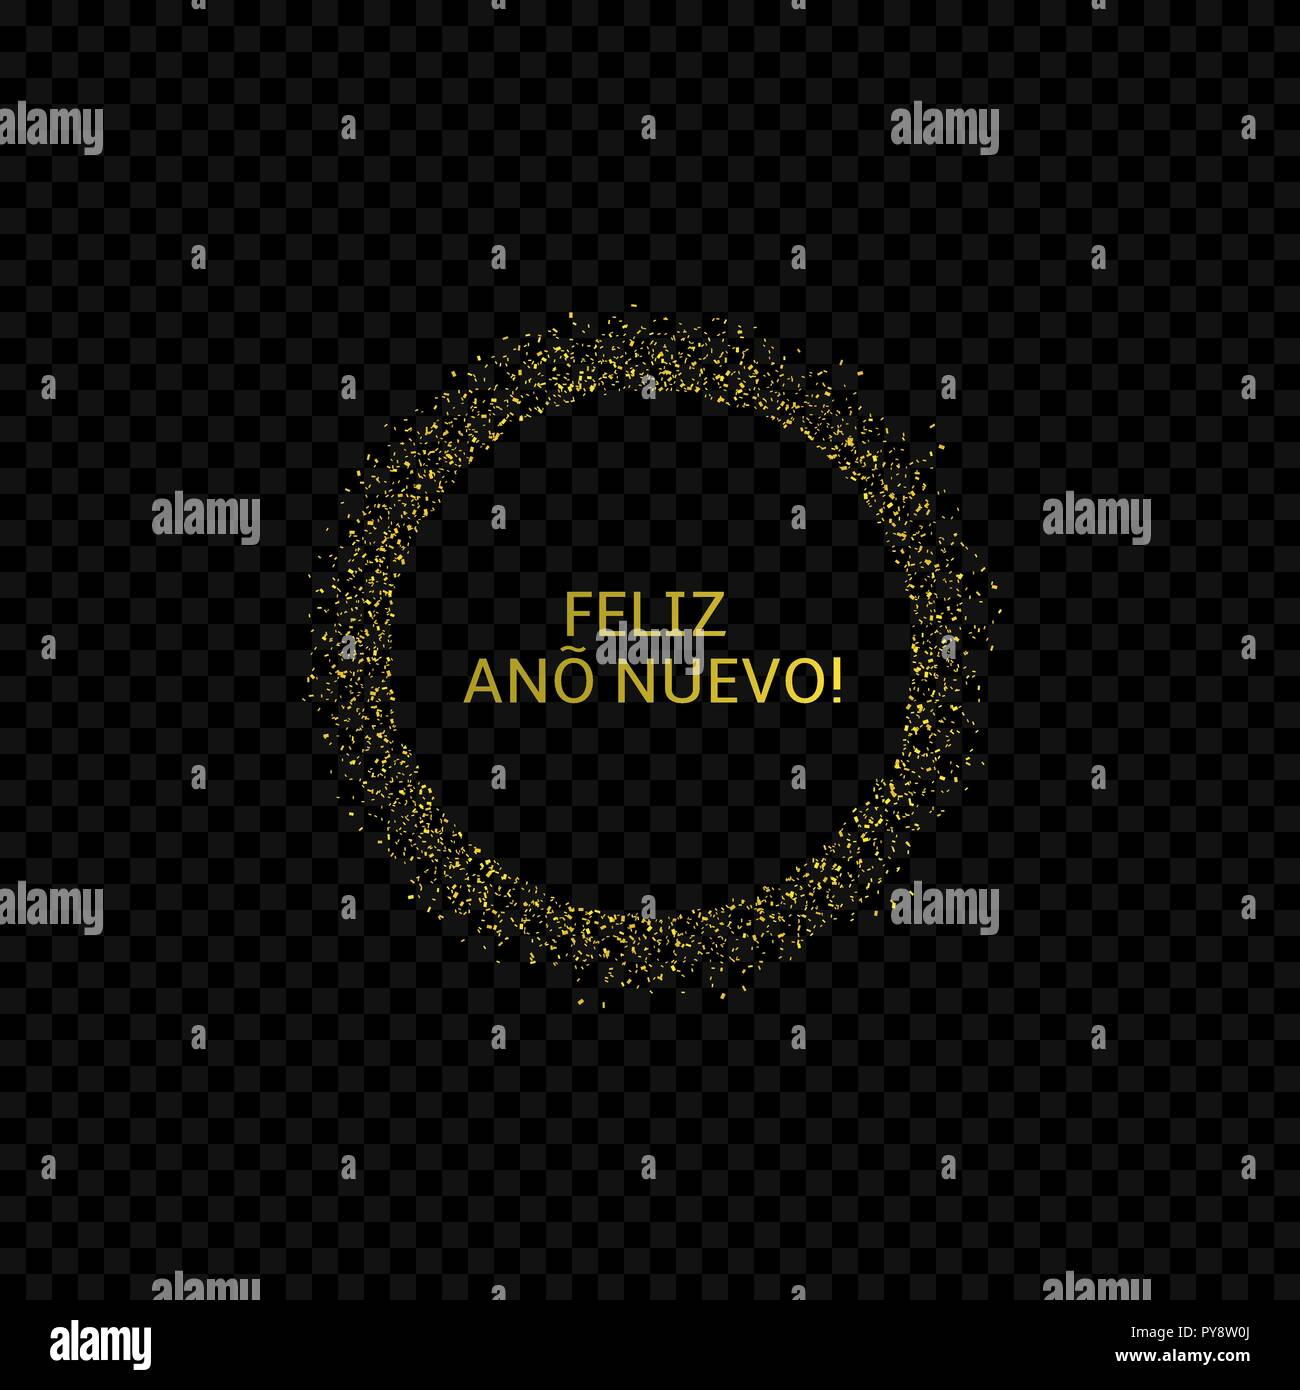 Spanish New Year label. Feliz Ano Nuevo, Golden confetti label - Stock Image